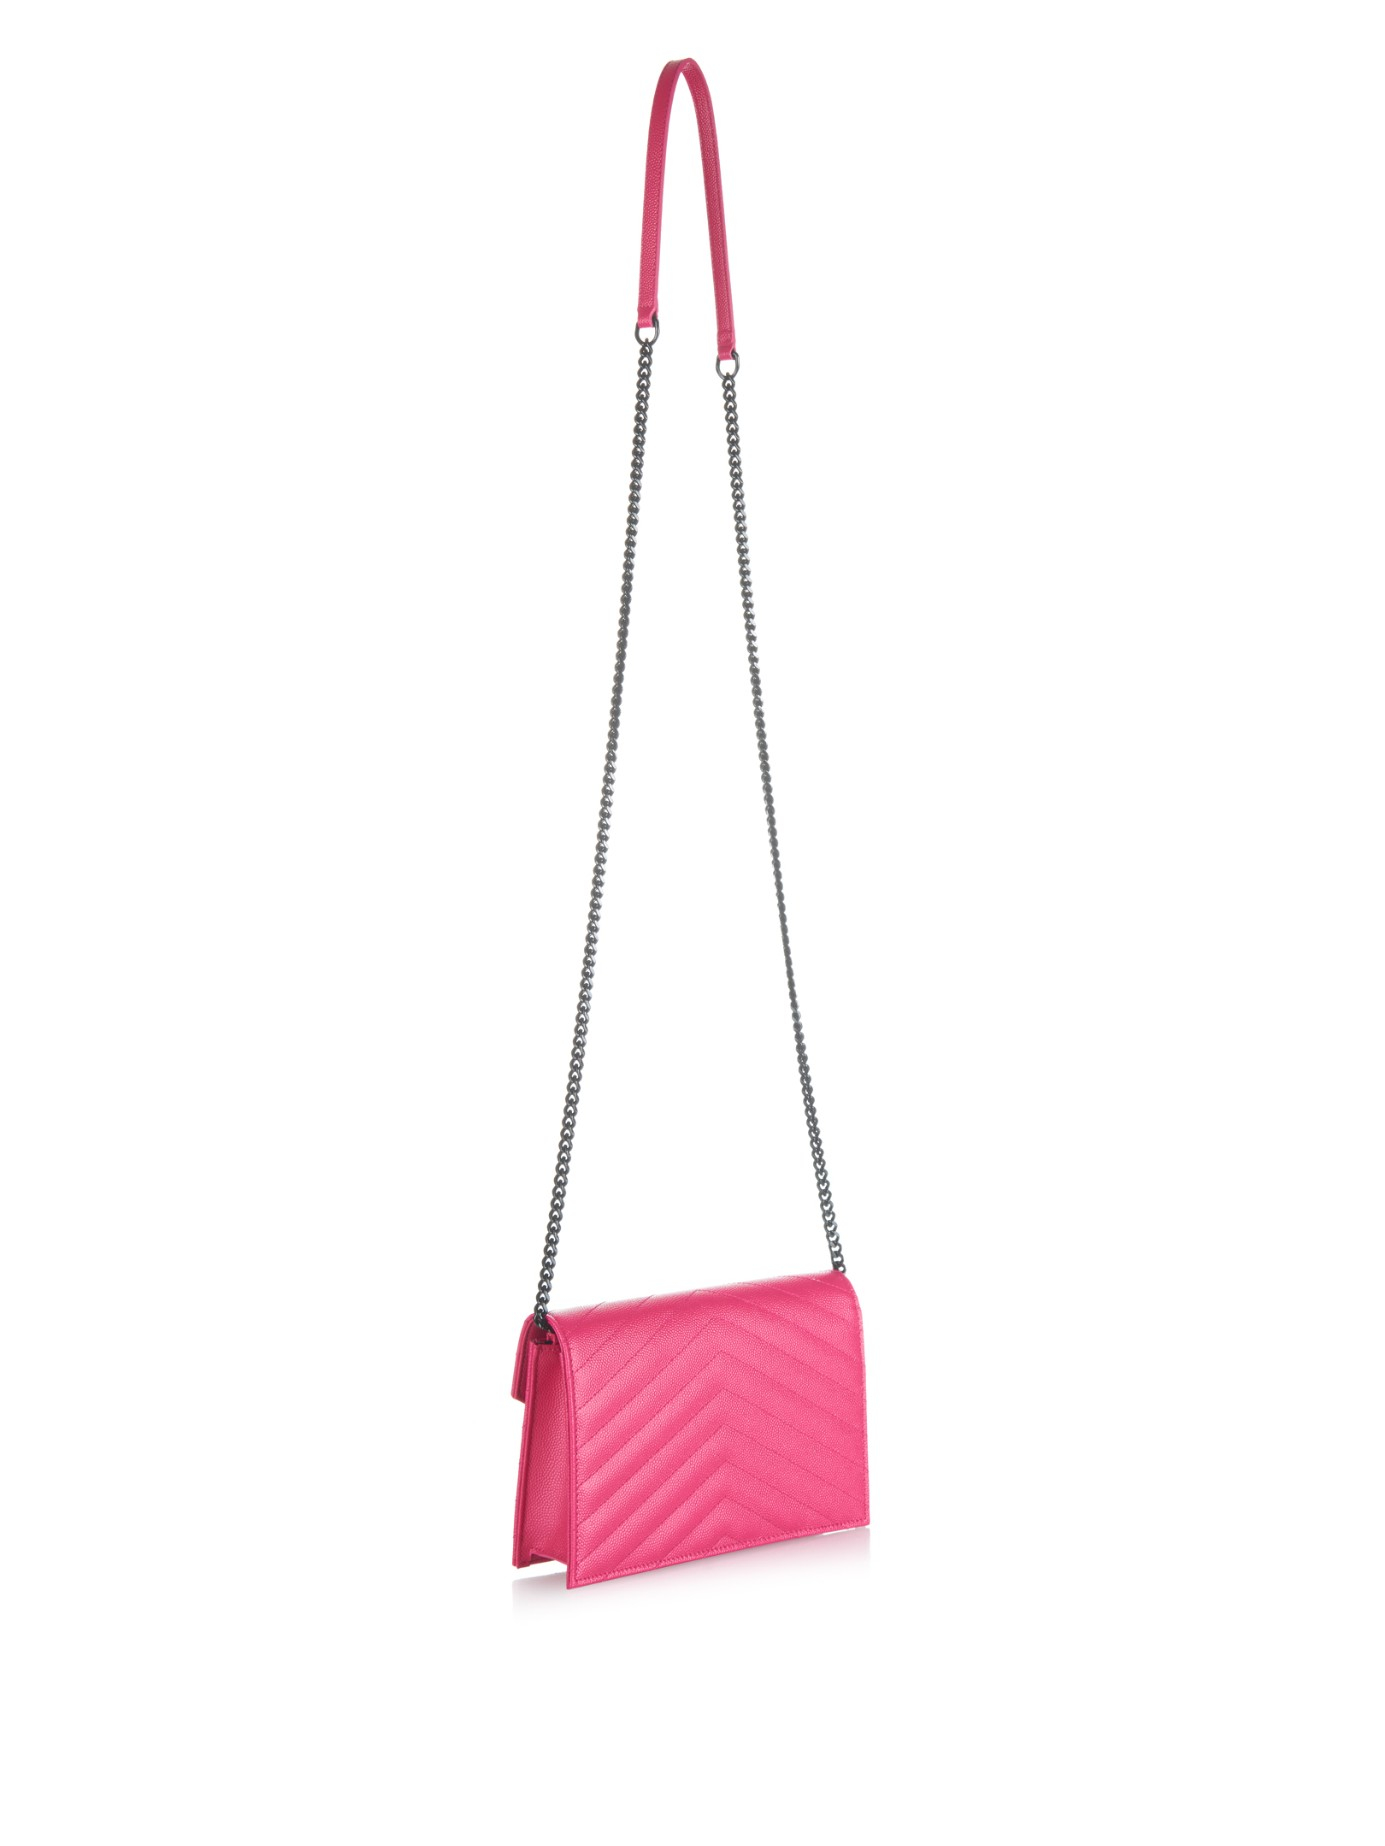 Saint Laurent Monogram Quilted Leather Cross Body Bag In